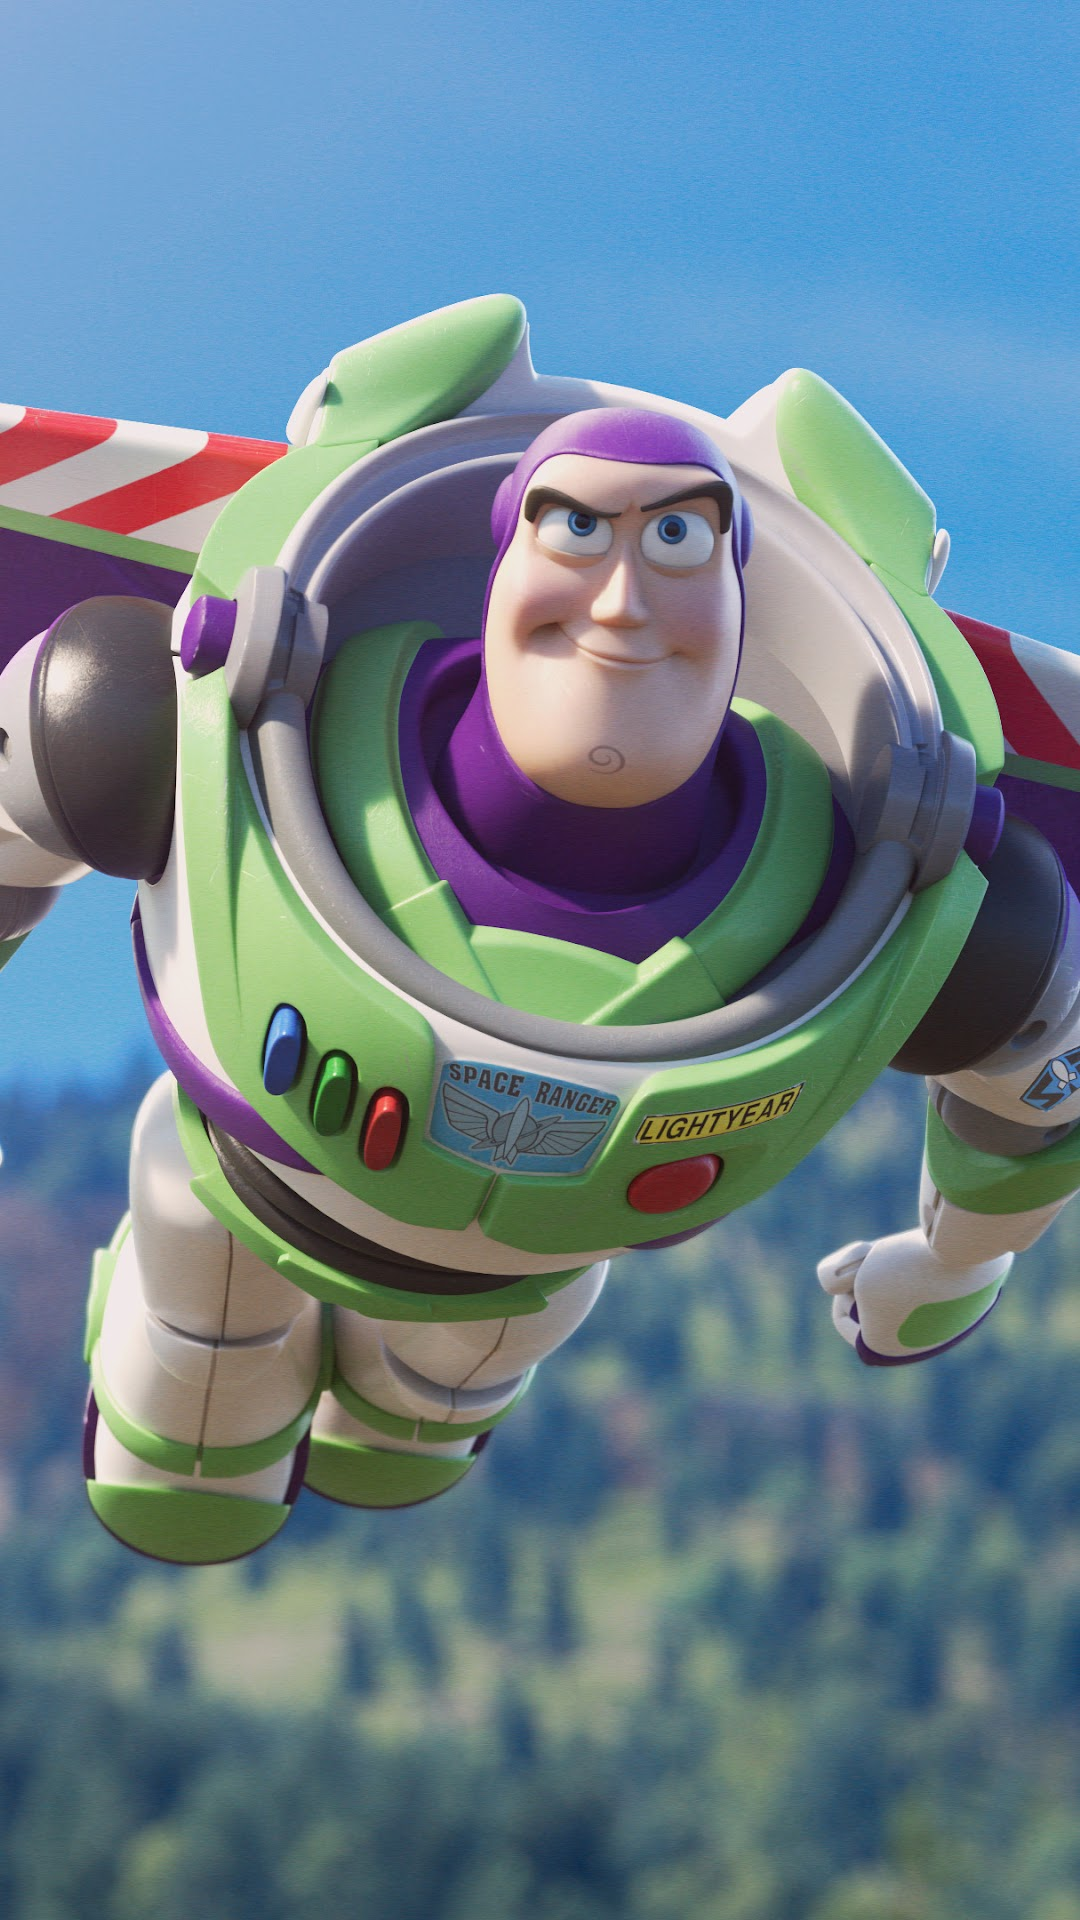 Buzz Lightyear Toy Story 4 4k Wallpaper 25